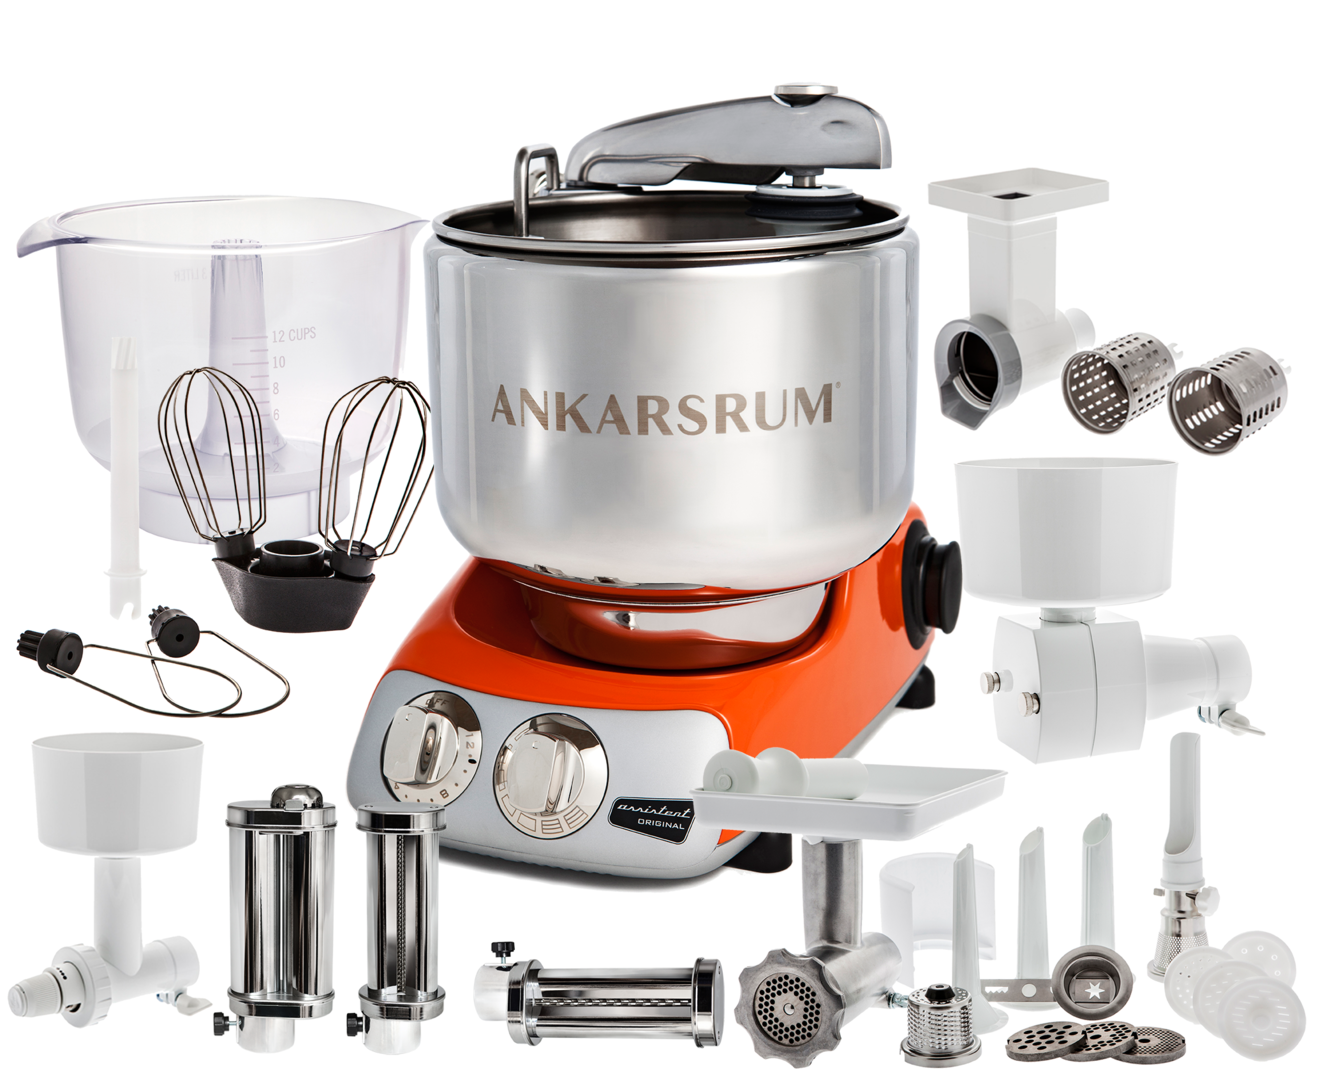 Ankarsrum Original Total mixer, Orange (2300109)